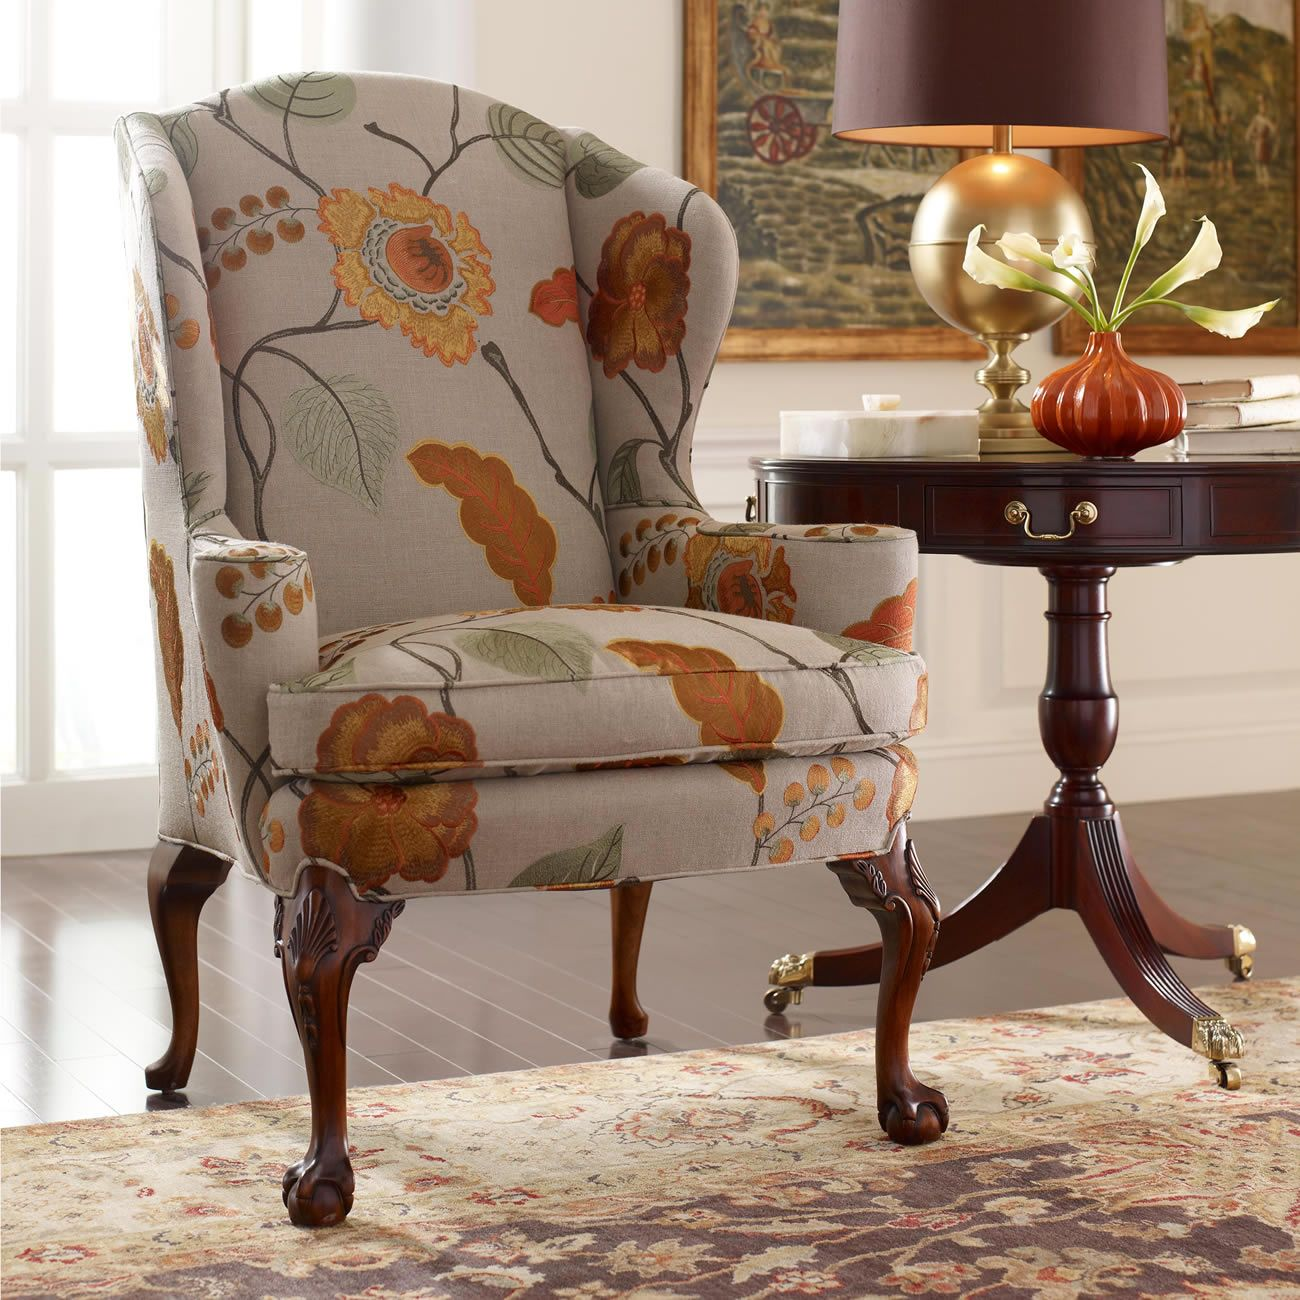 Stickley Furniture Price List - Brooklyn heights wing chair stickley furniture since